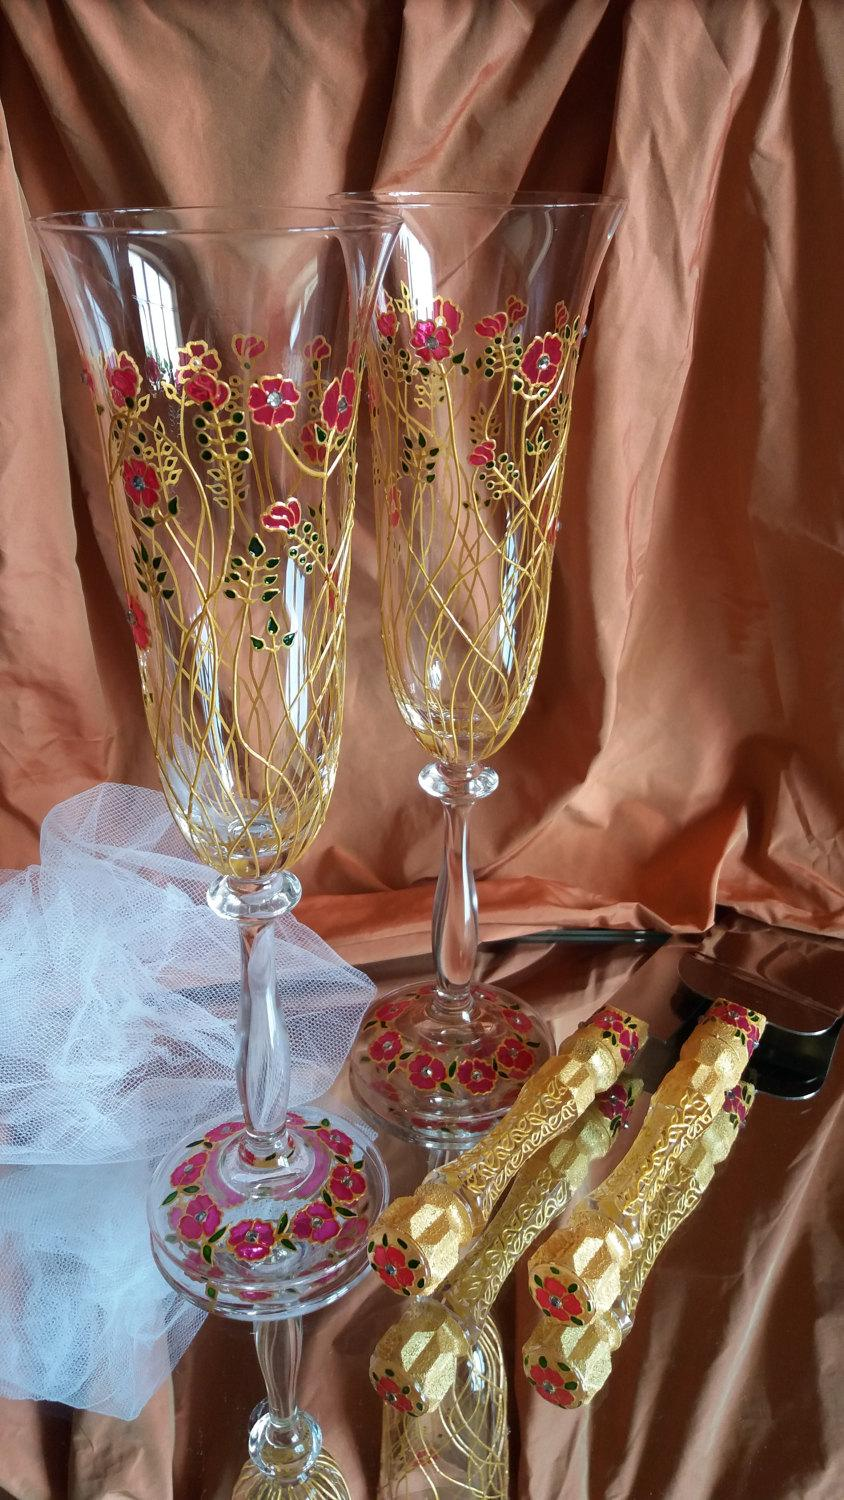 Boda - Wedding Glasses, Engagement Gift cake serving Toasting Flutes Decoration Glasses Champagne Flutes Gift Glasses Pink Flower Toasting Glasses